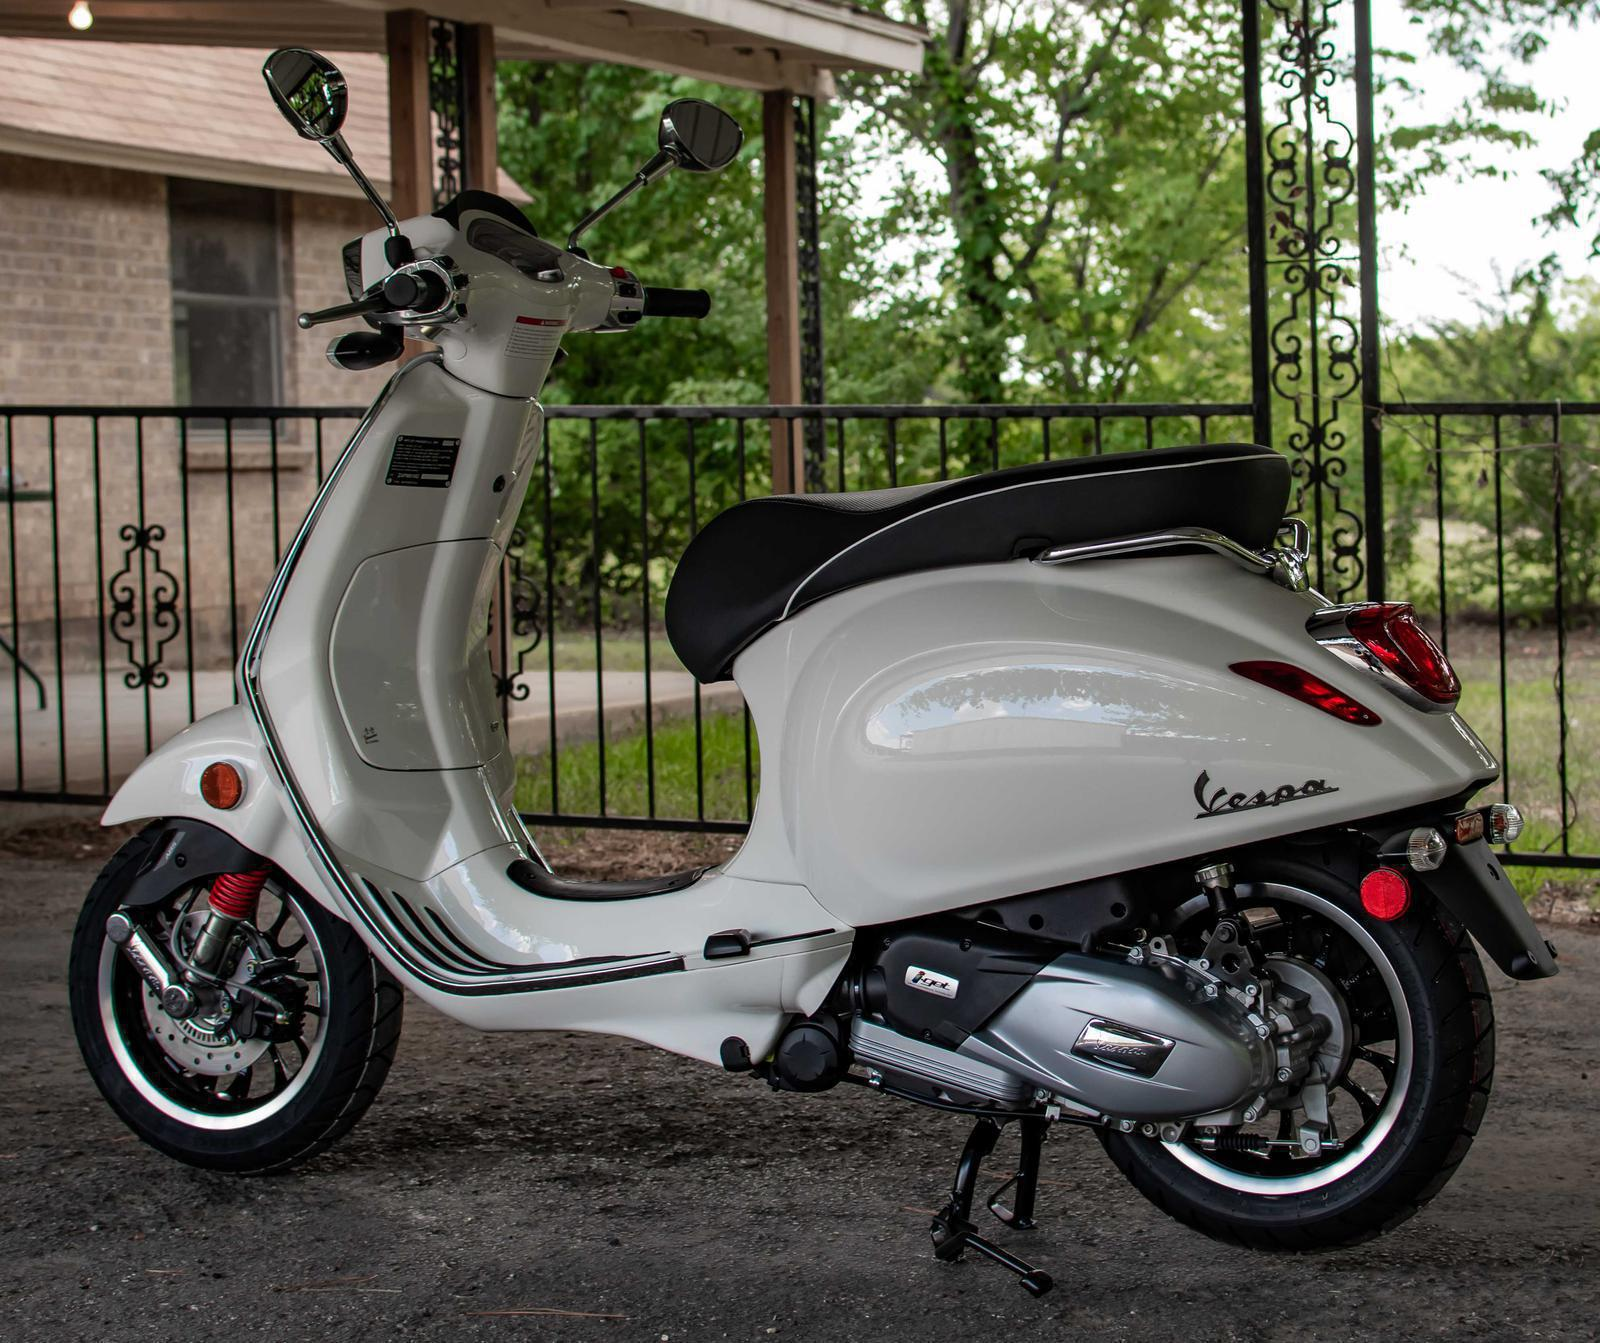 2020 Vespa Sprint 150 Abs Bianco Innocenza For Sale In Colleyville Tx Moxie Scooters Colleyville Tx 817 788 5333